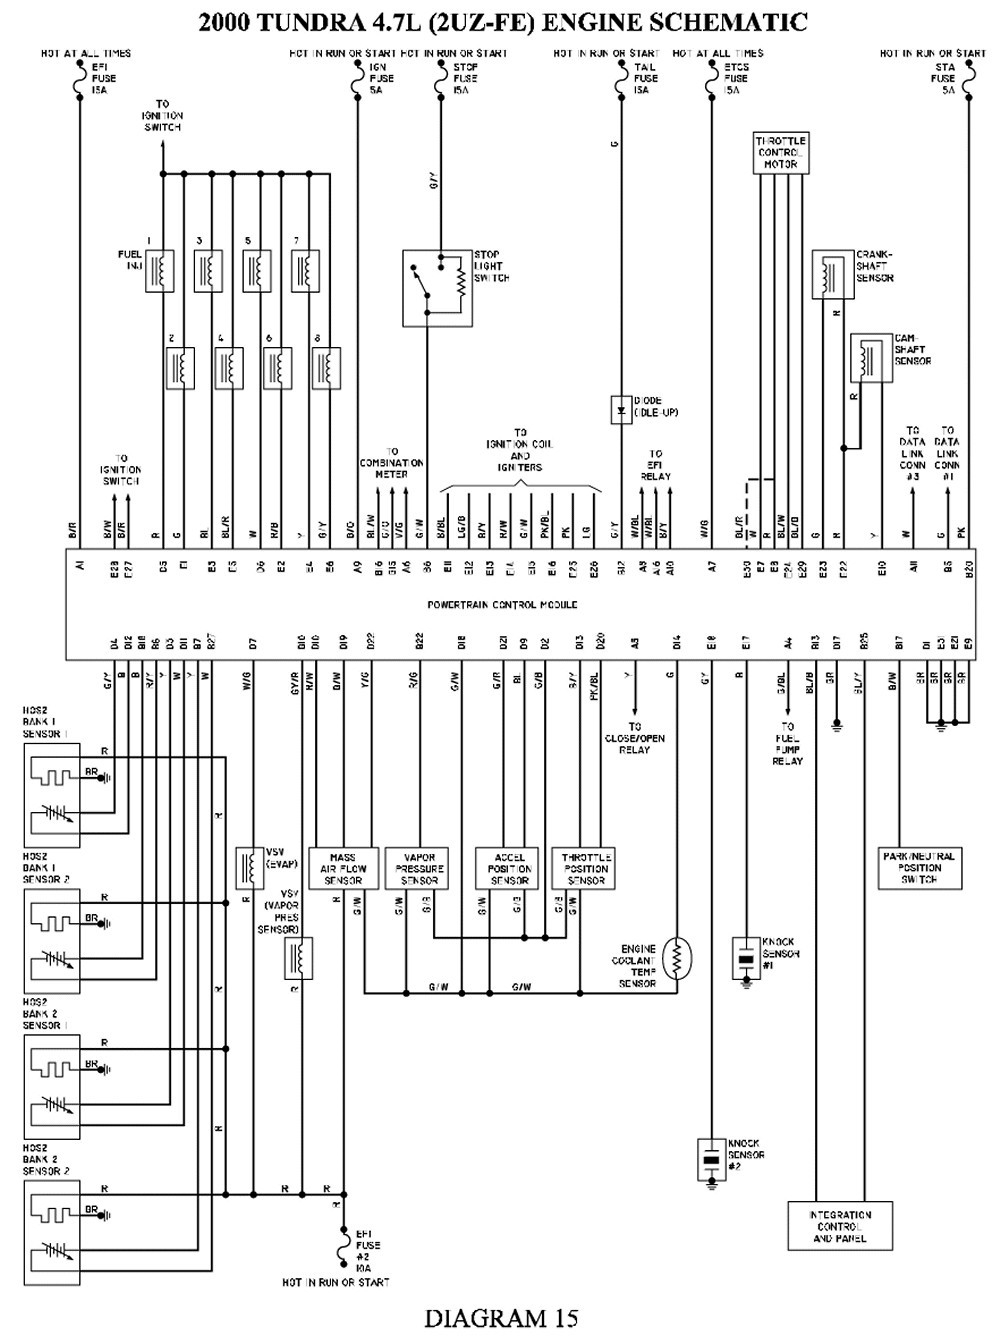 ccomputer 2000 toyota wiring harness diagram 2000 toyota wiring harness diagram